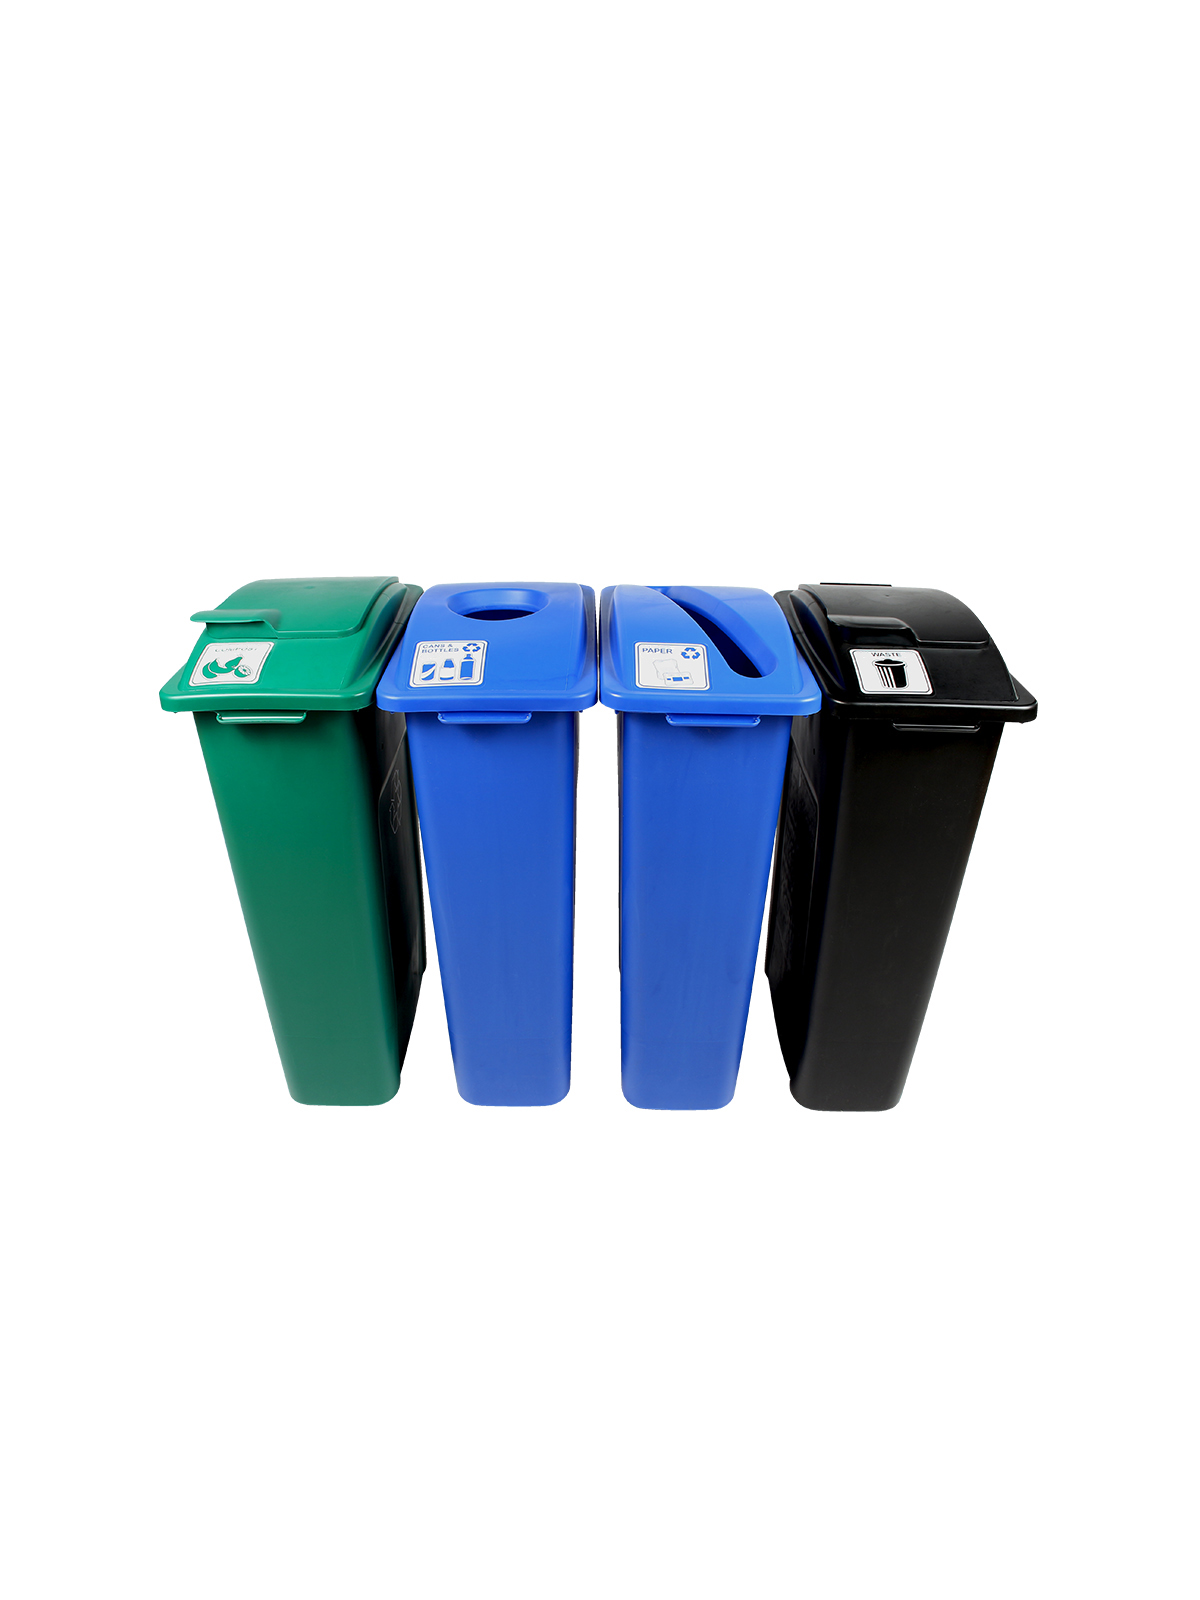 WASTE WATCHER - Quad - Cans & Bottles-Paper-Compost-Waste - Circle-Slot-Solid Lift-Solid Lift - Blue-Blue-Green-Black